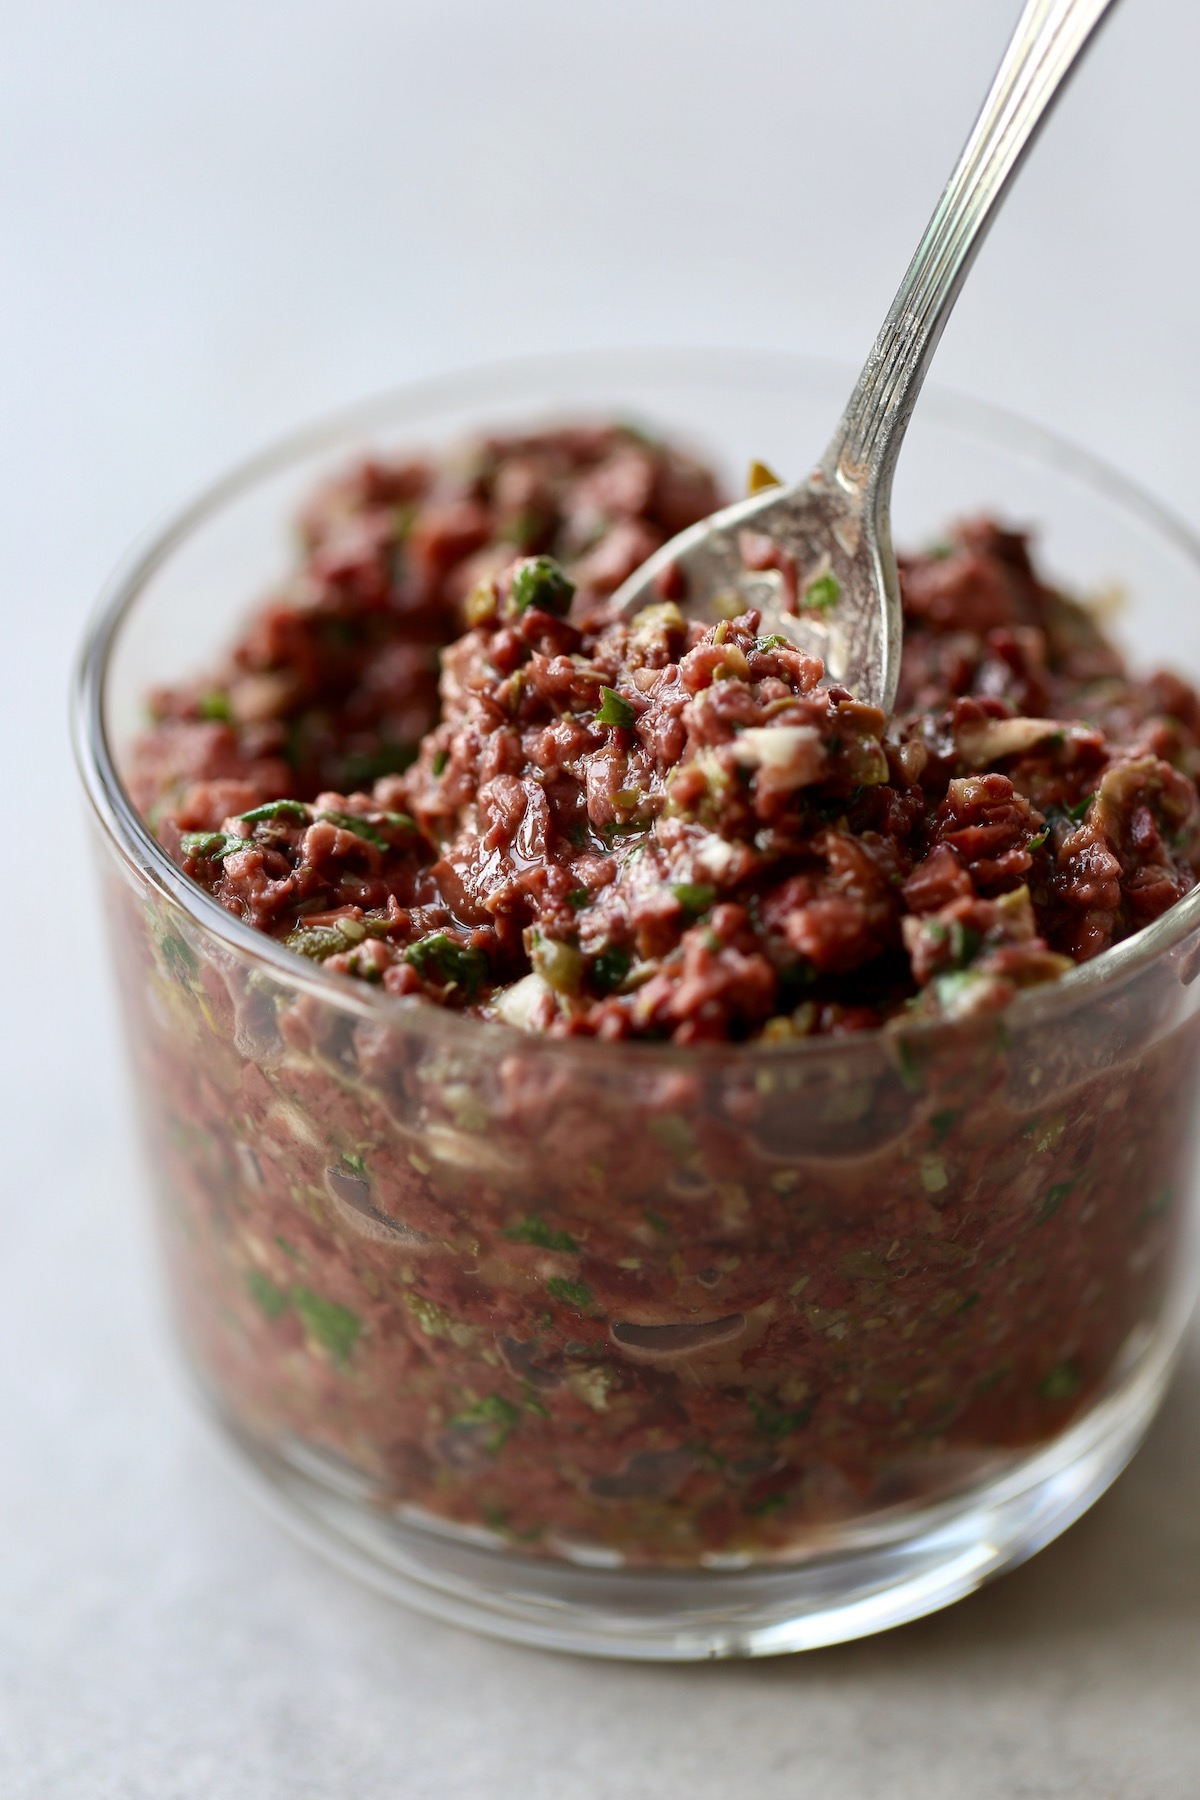 Homemade tapenade being scooped up with a spoon